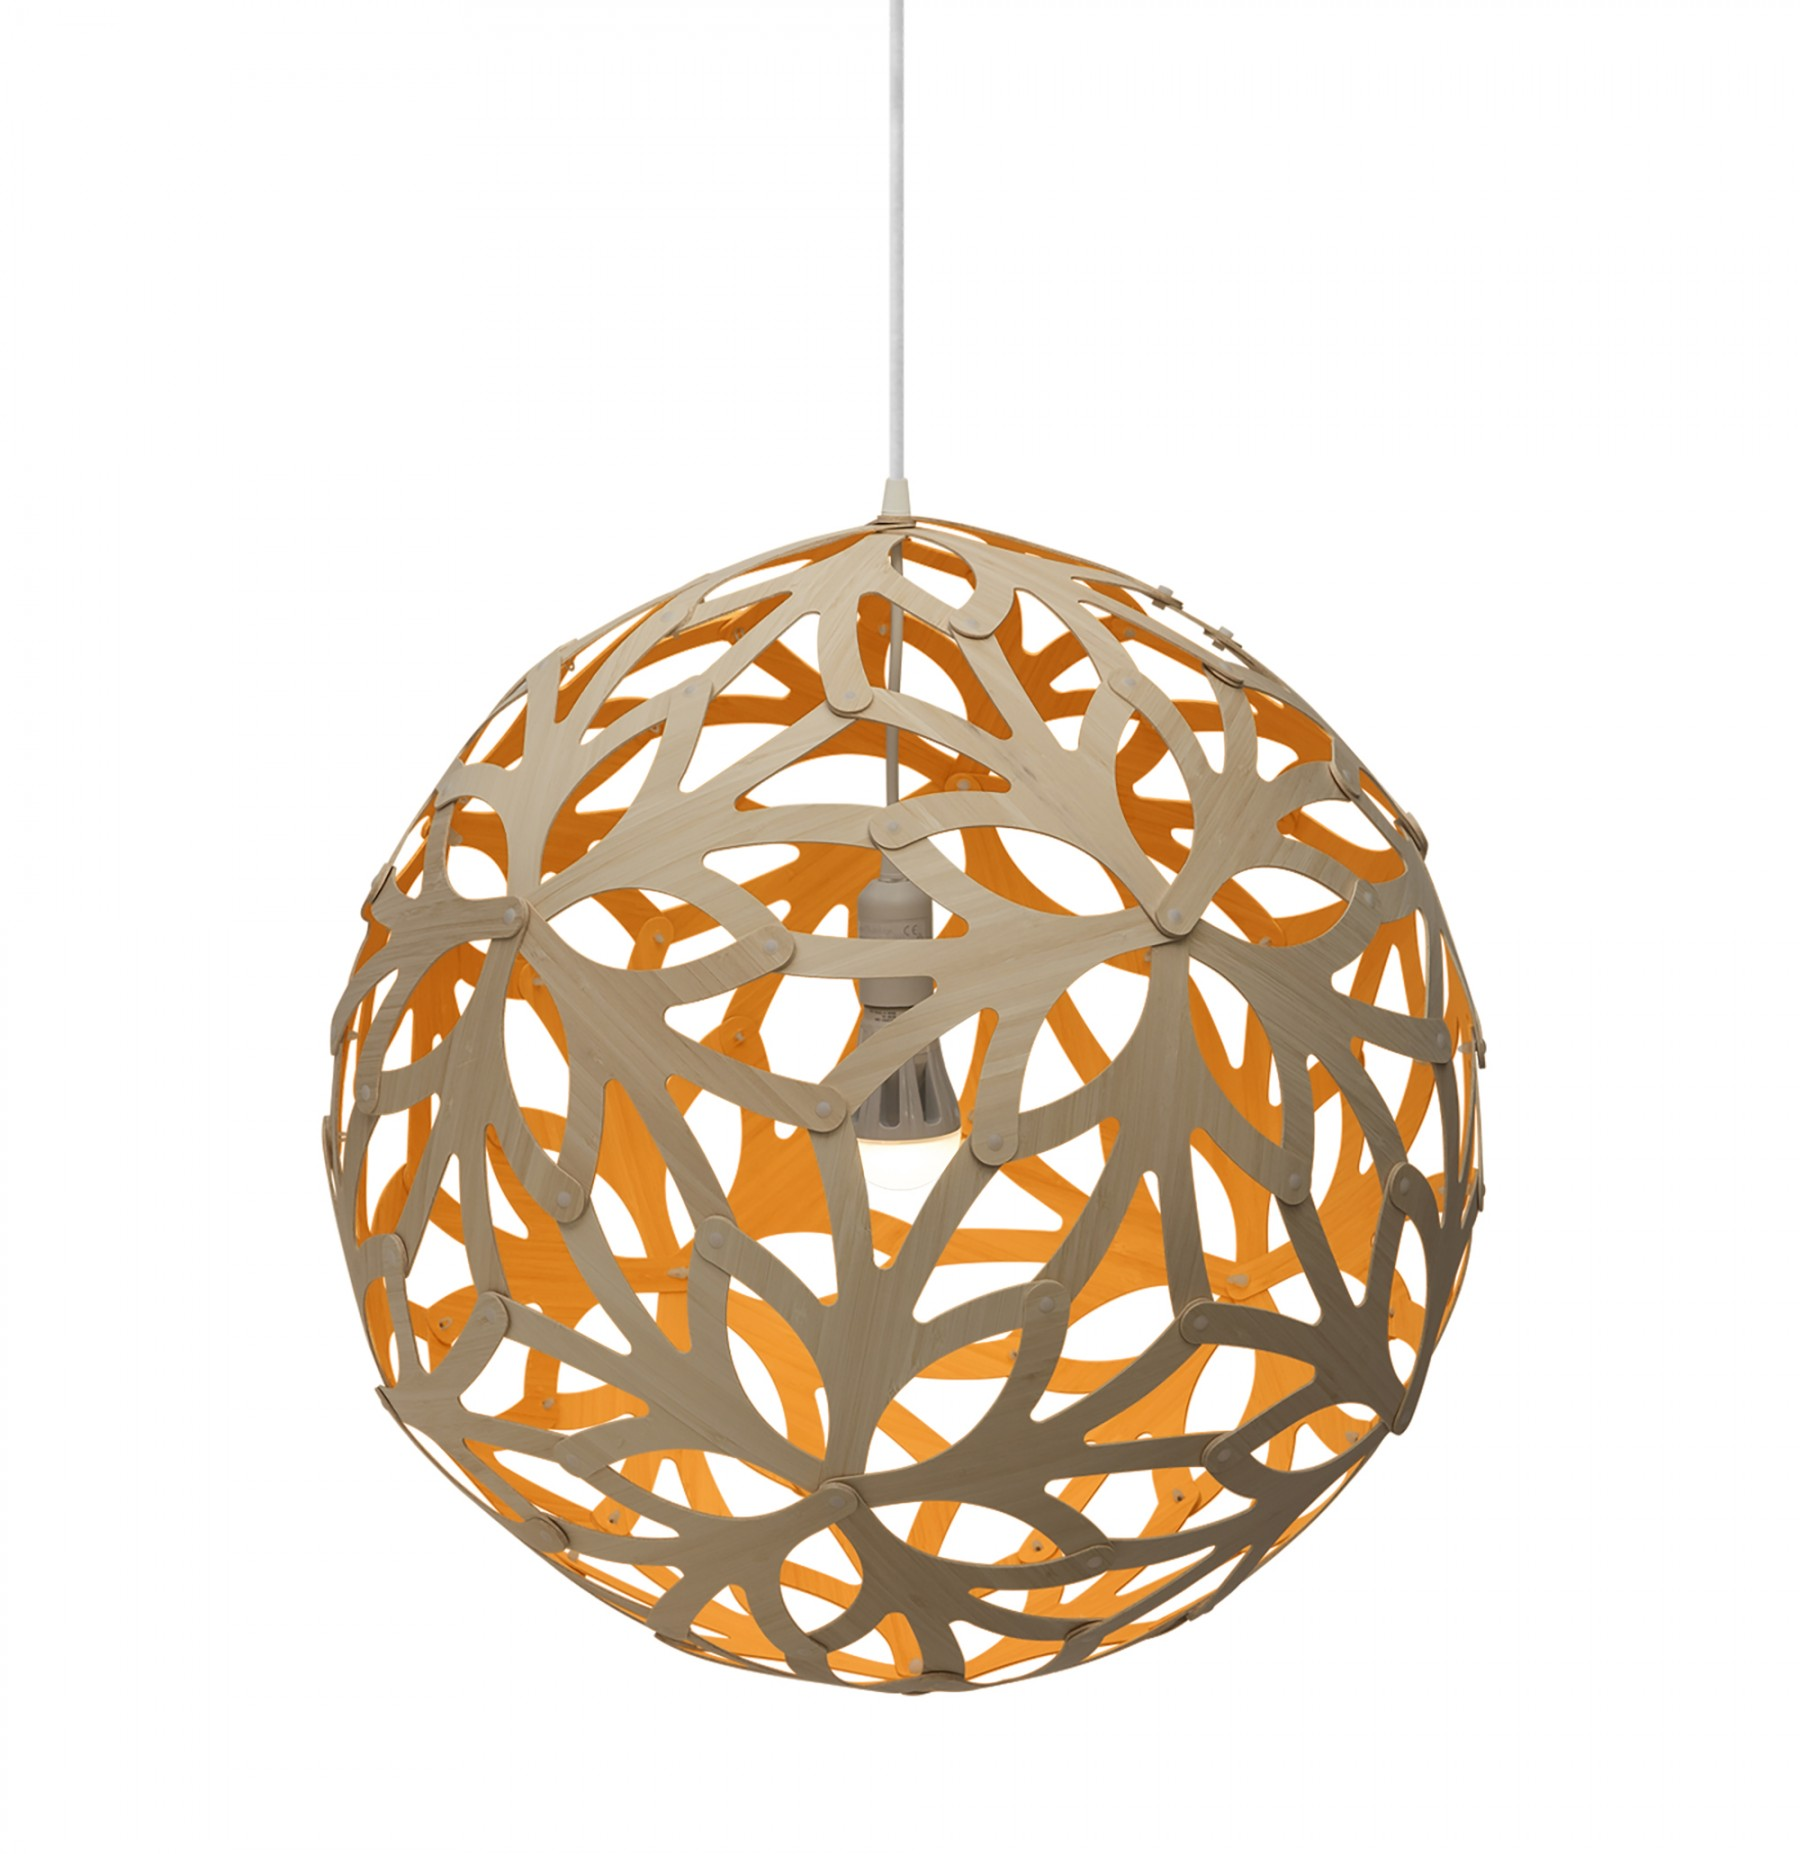 ... Trubridge Floral Pendant Light. 1  sc 1 st  Modern Planet & David Trubridge Floral Pendant Light - Modern Planet azcodes.com